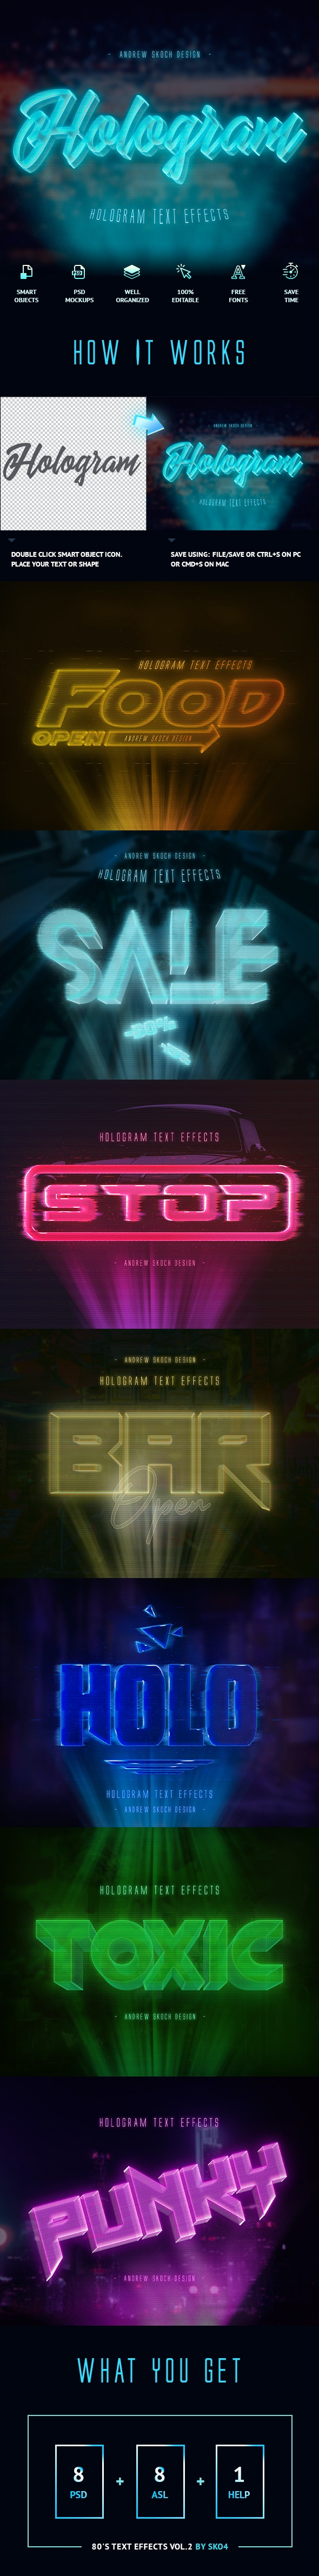 Hologram Text Effects - Text Effects Actions